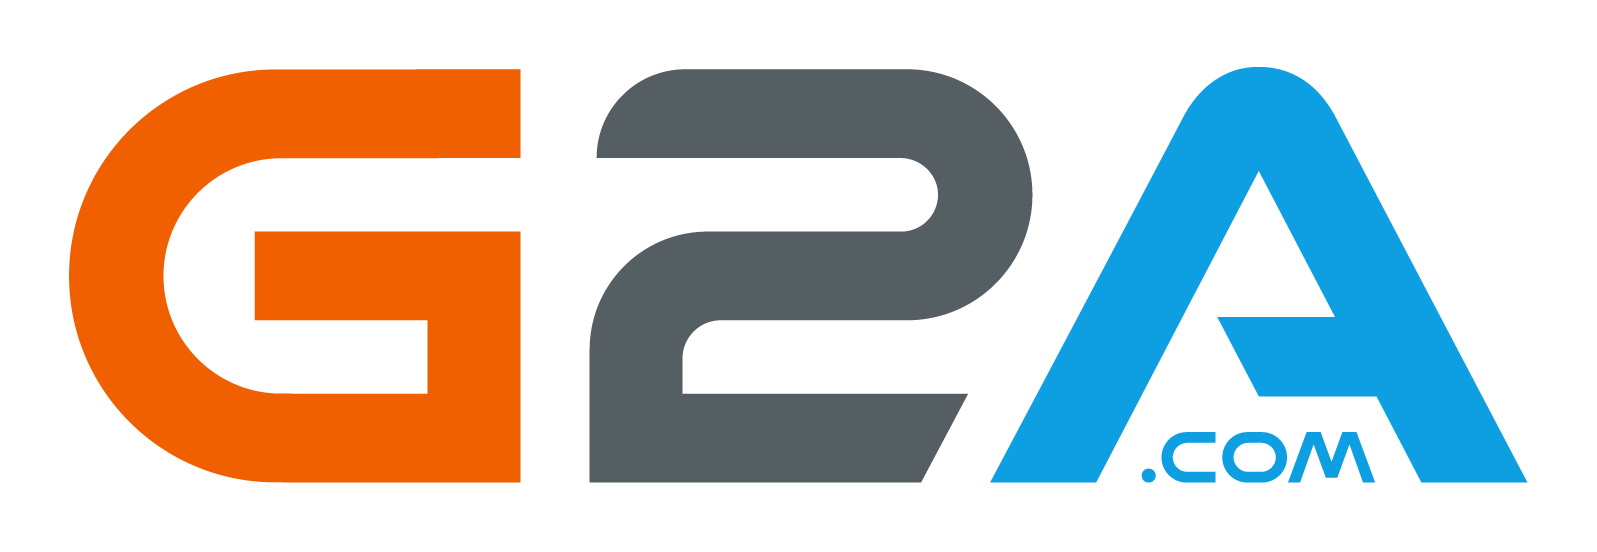 Image result for g2a png